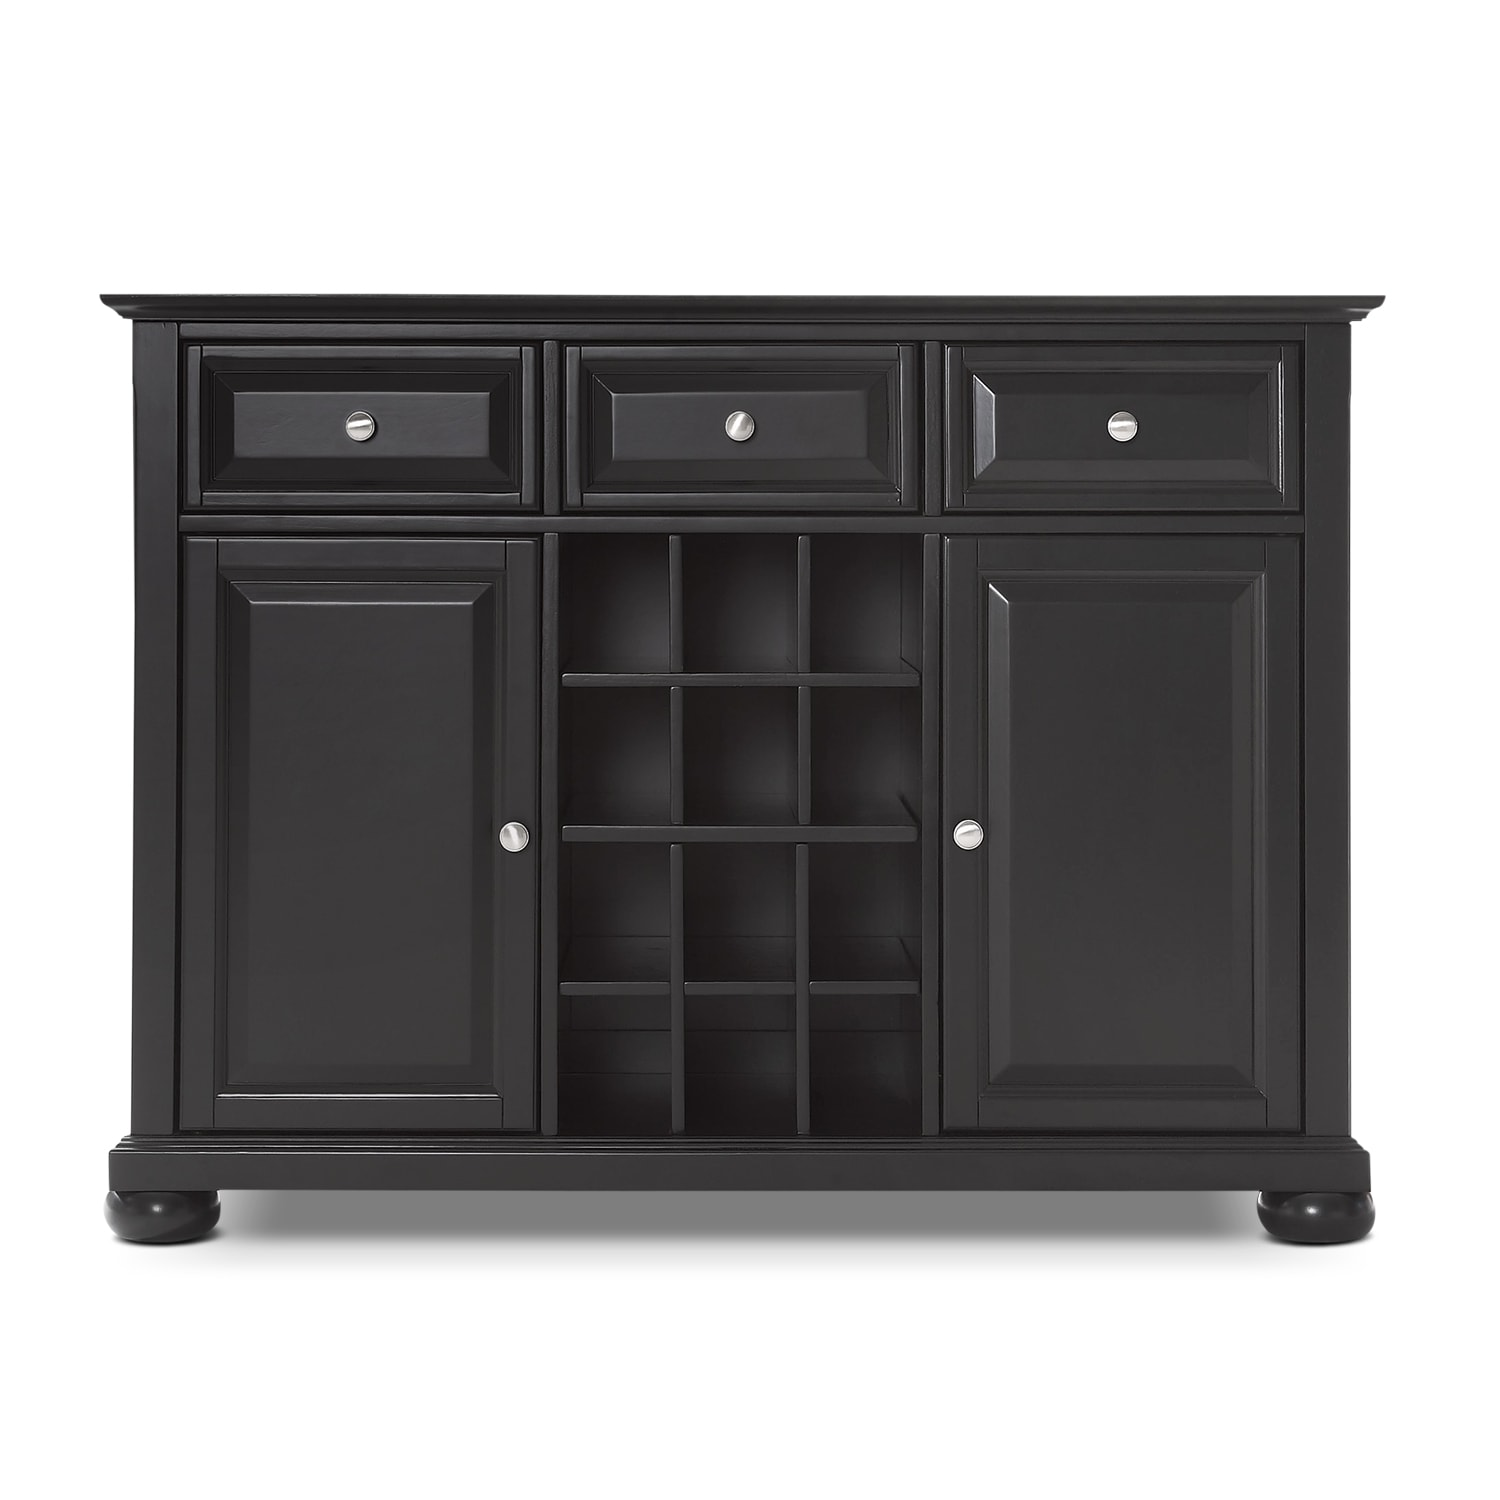 Macon Sideboard - Black